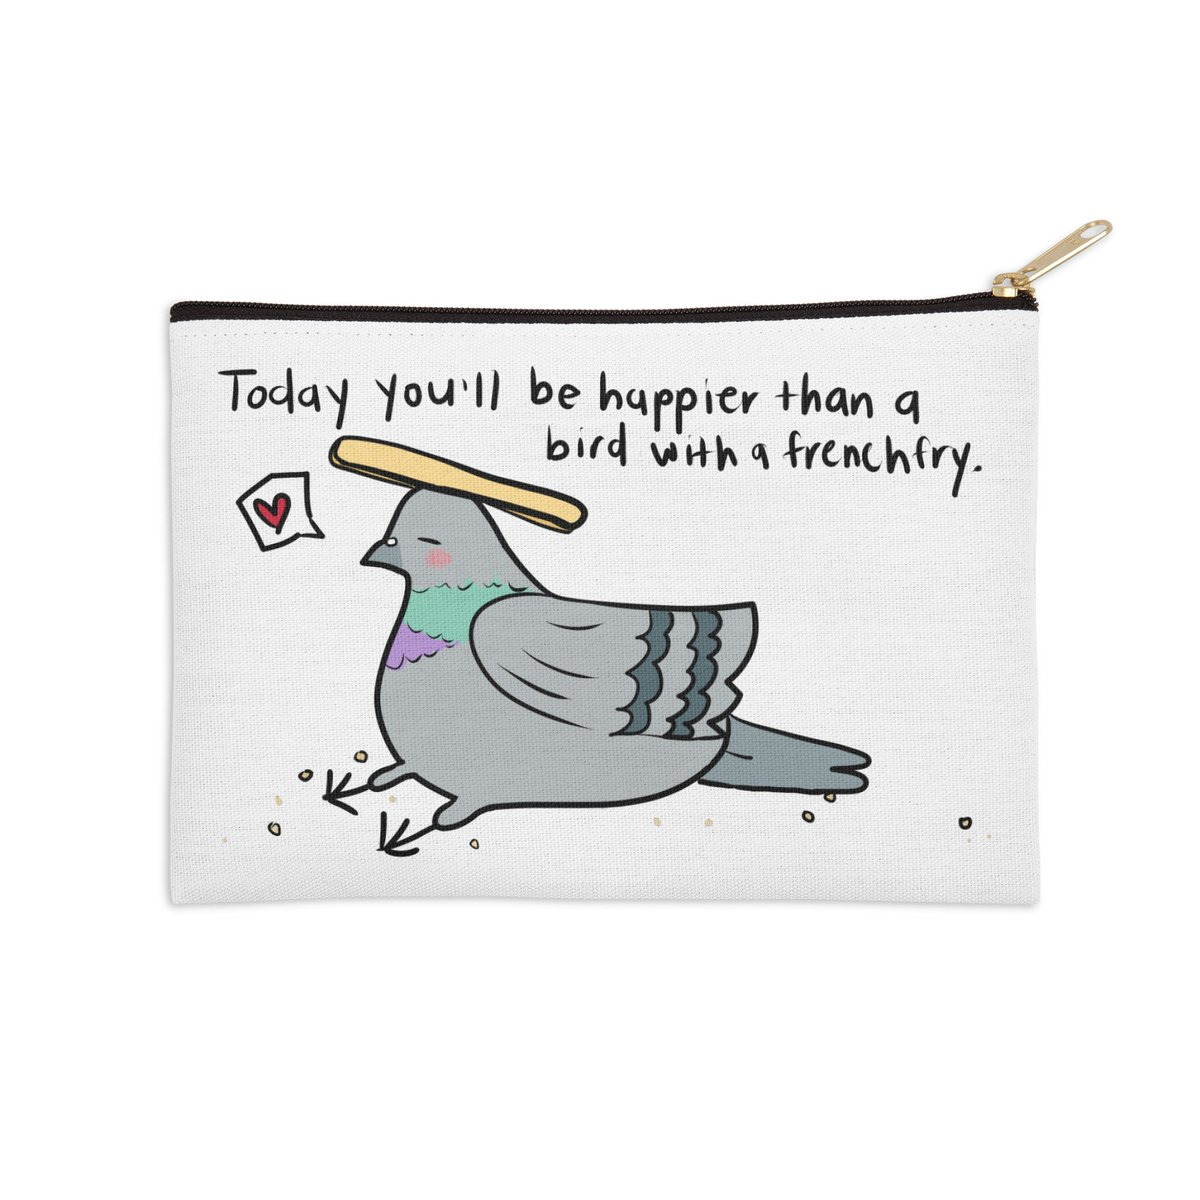 Carry your daily affirmation with you! Have a great week! #behappy @threadless Link in pinned tweet   #hawaii #positive #positivity #apparel #Accessories https://t.co/IxcxpEl9W2